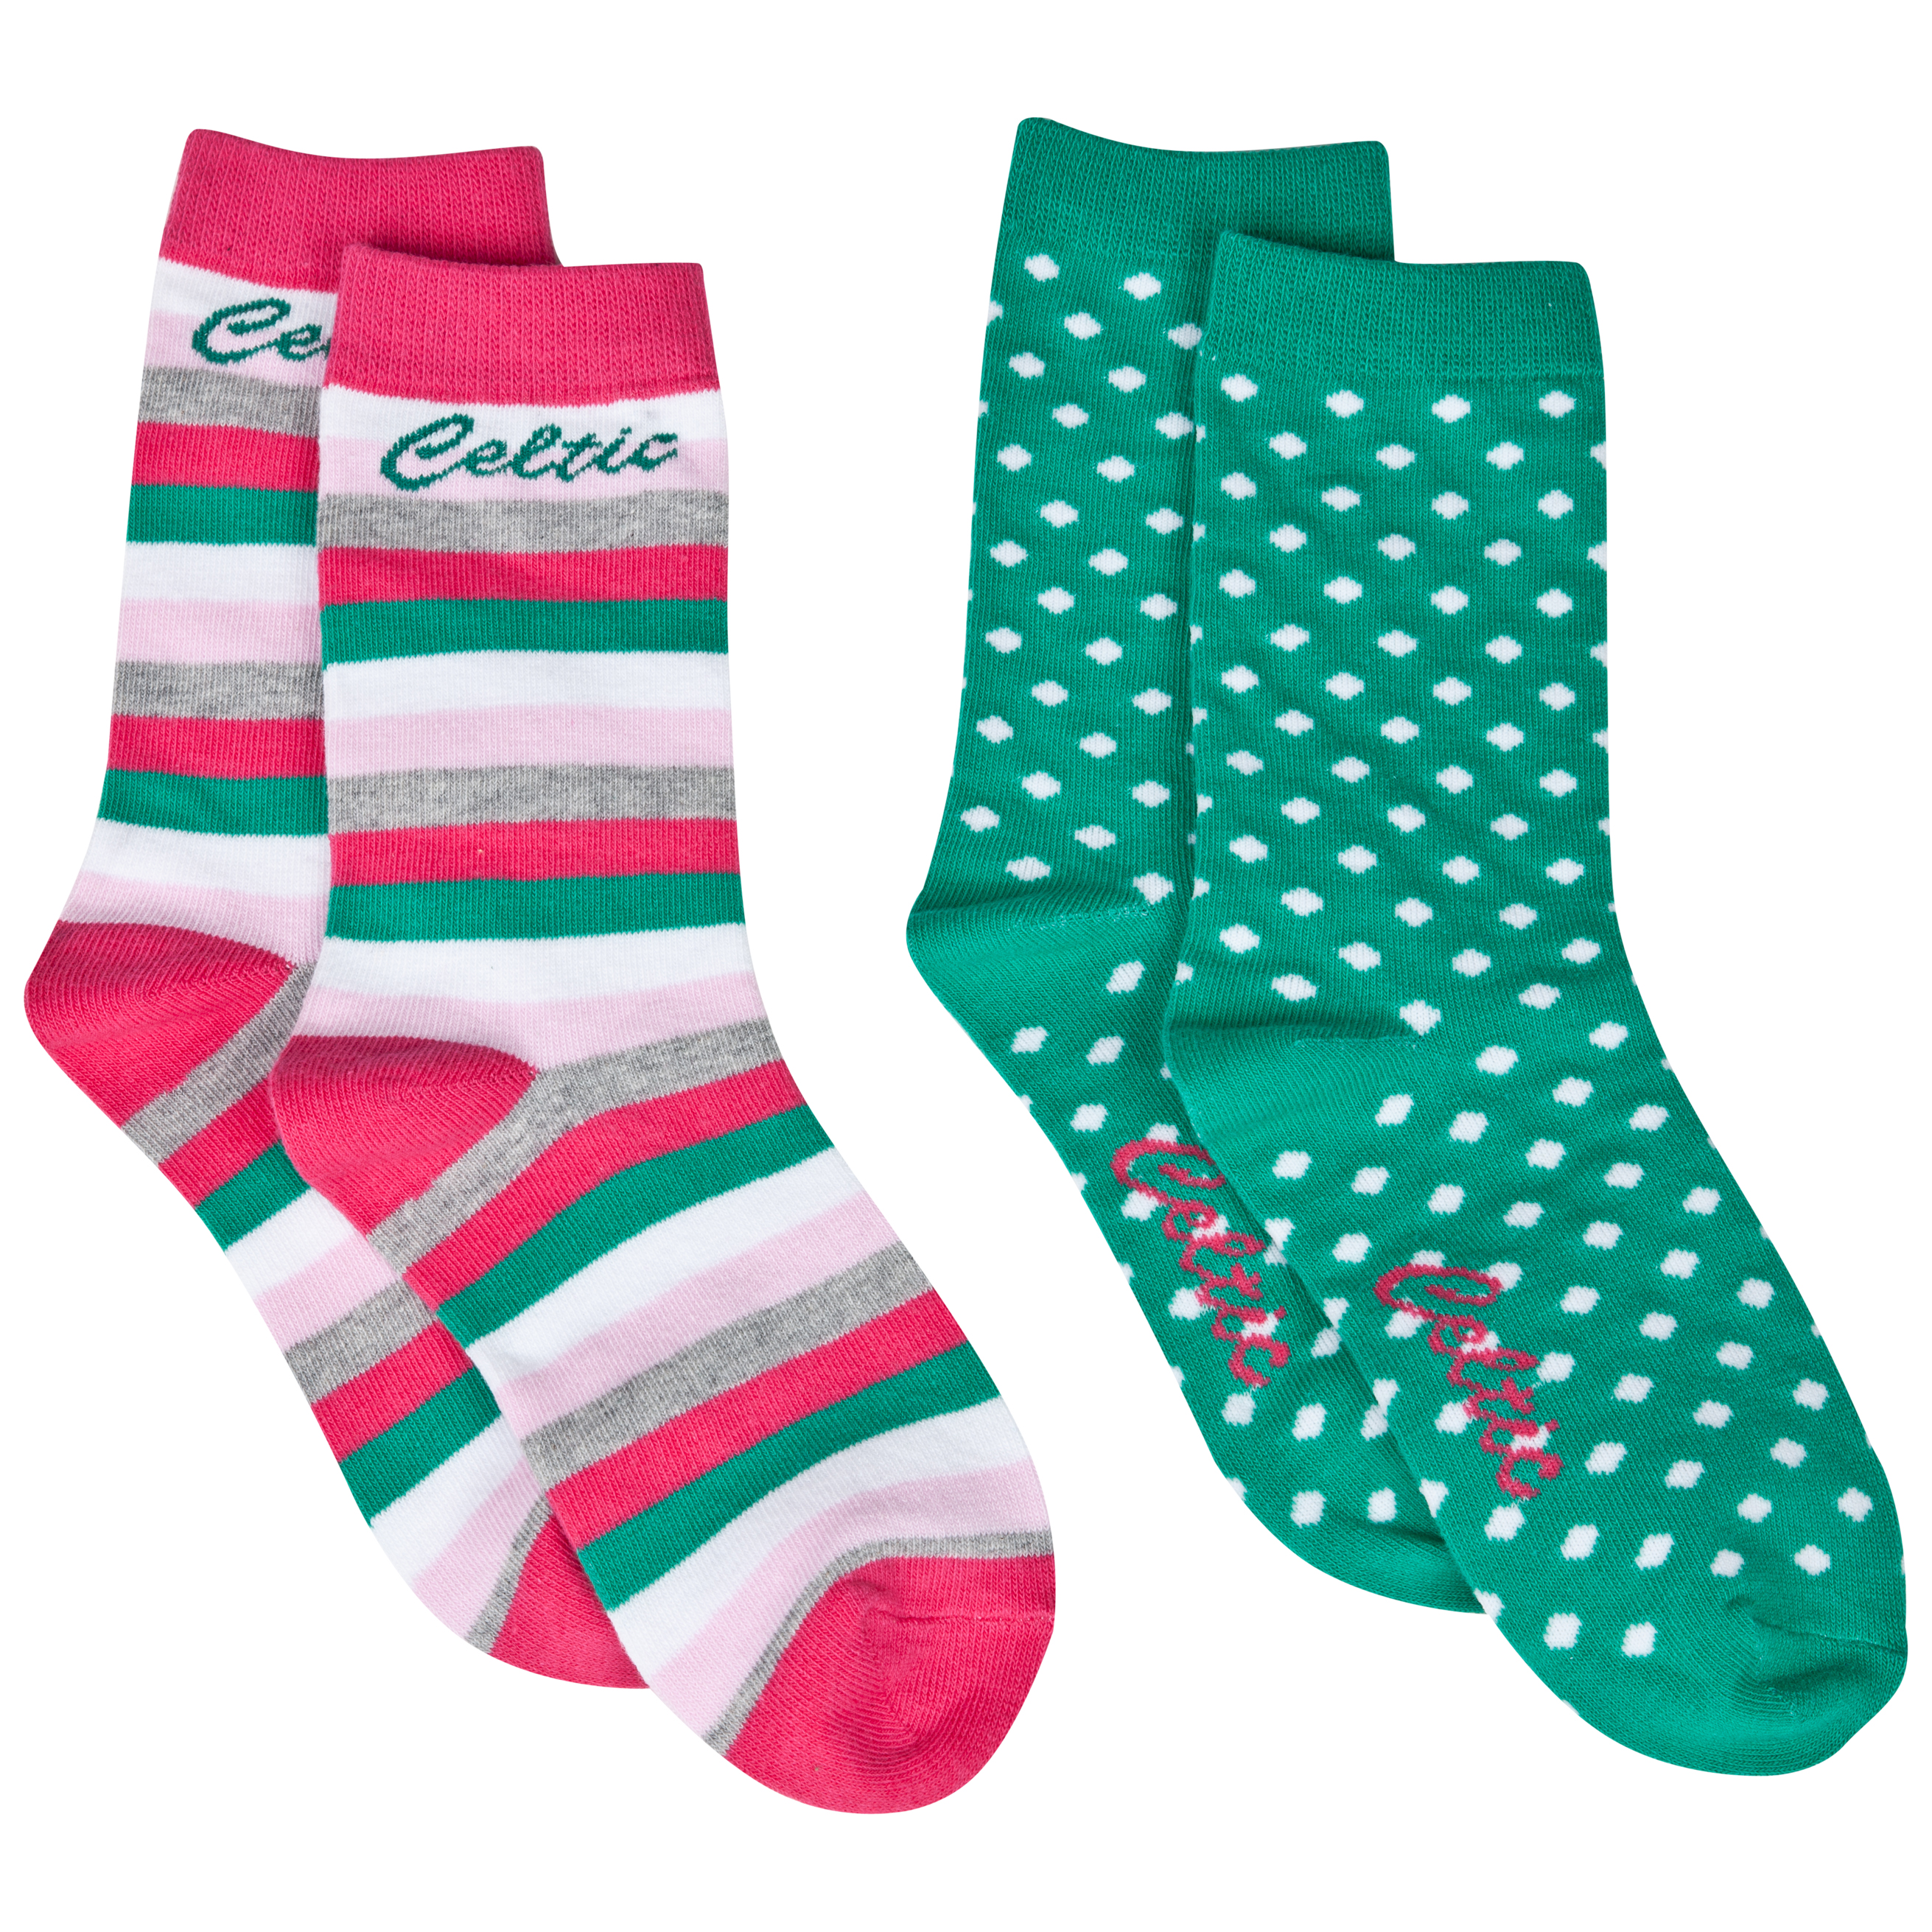 Celtic 2 Pack Socks - Pink/Oasis Green/White - Girls